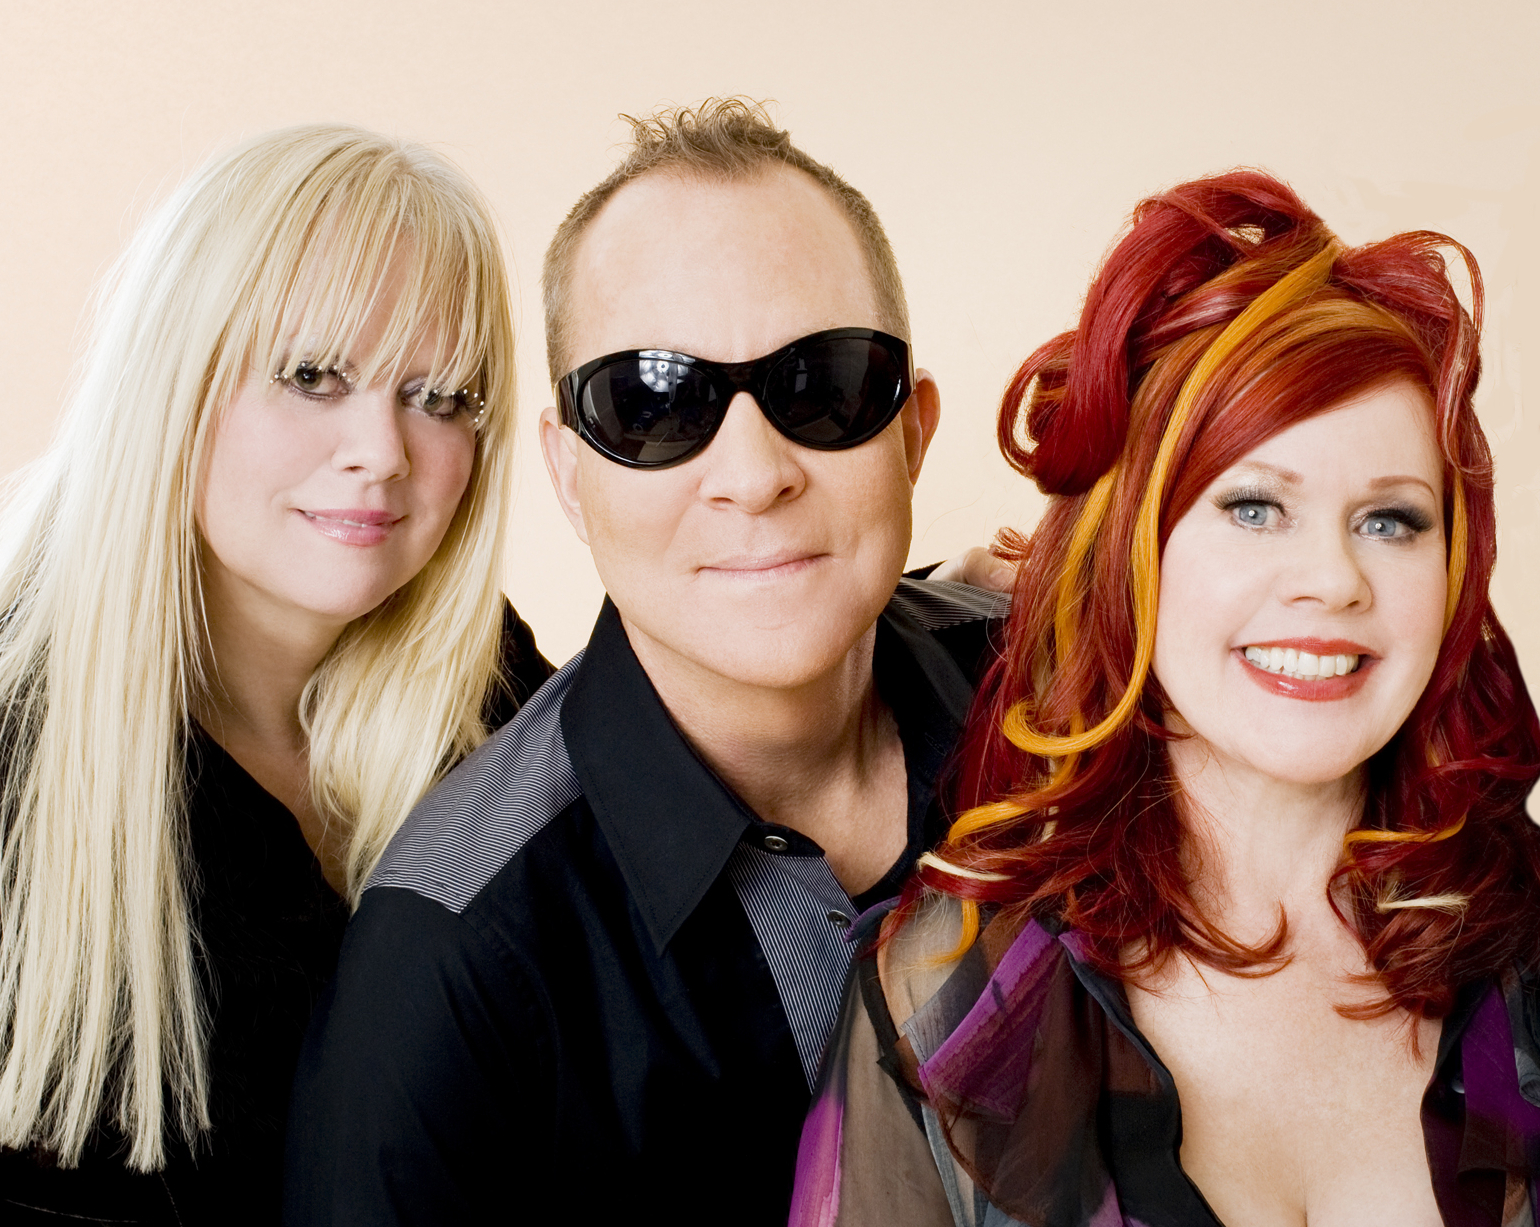 the rock group the B-52s